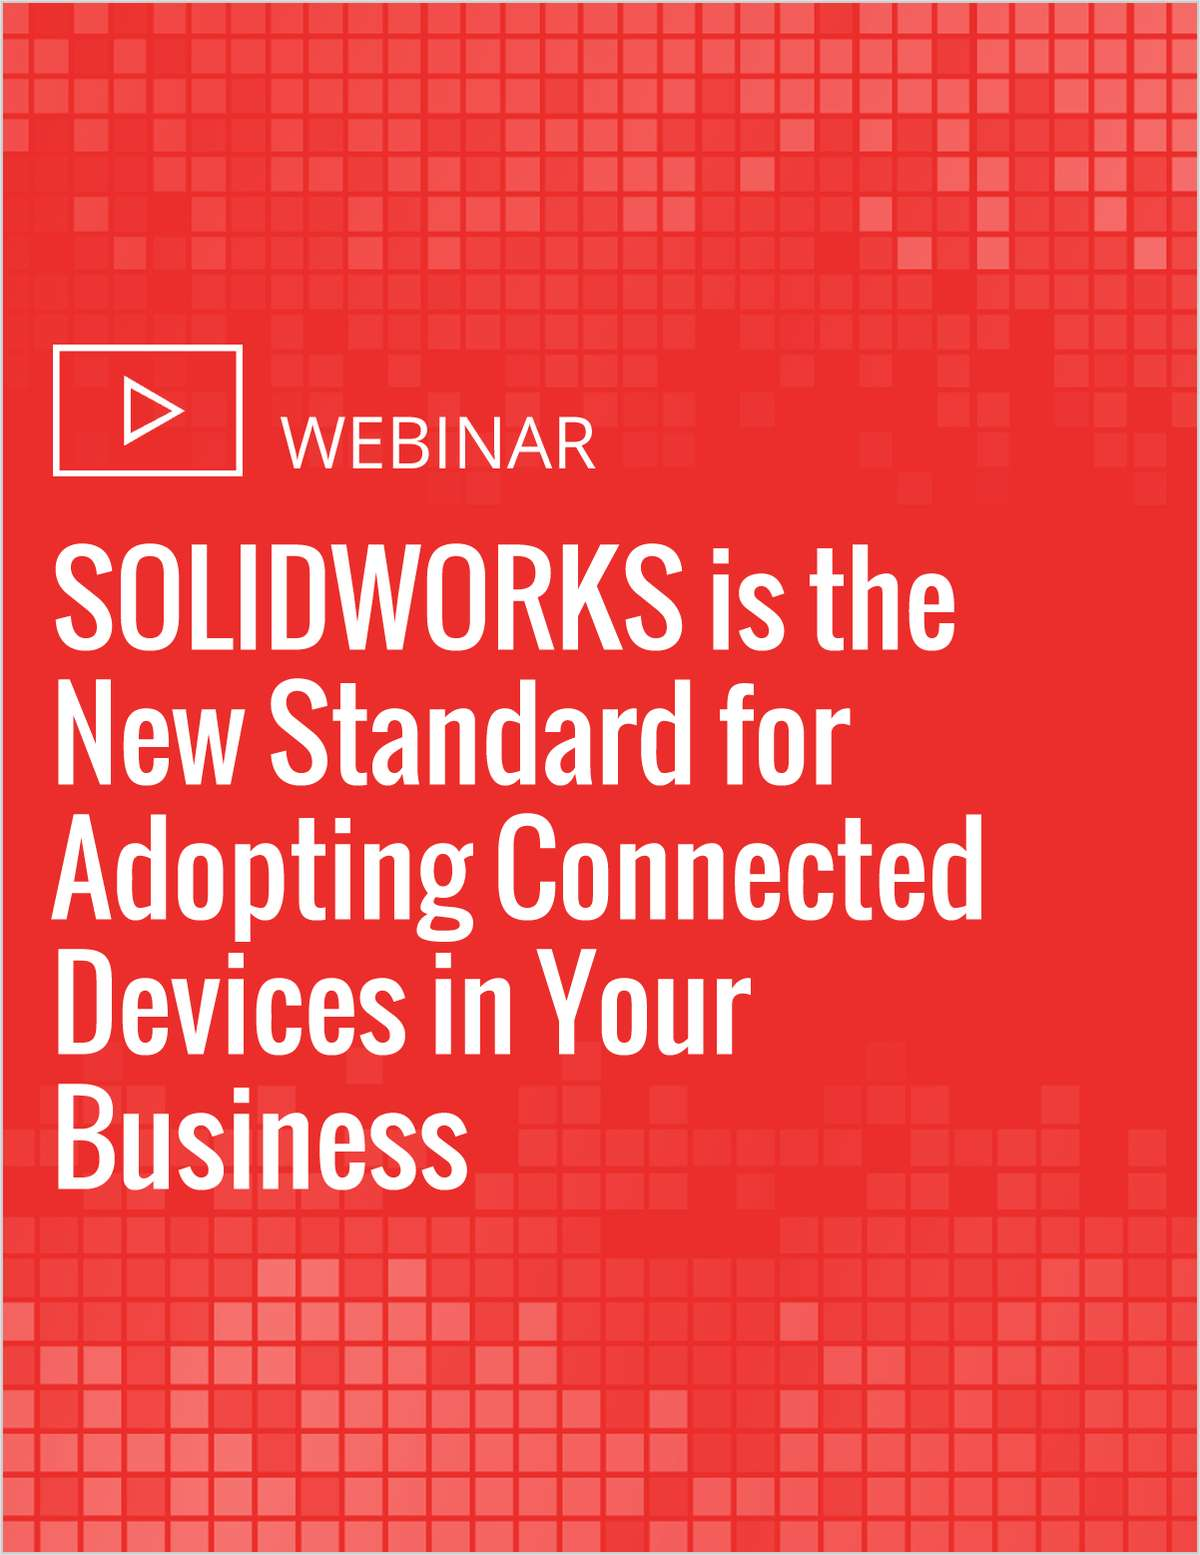 SOLIDWORKS is the New Standard for Adopting Connected Devices in Your Business